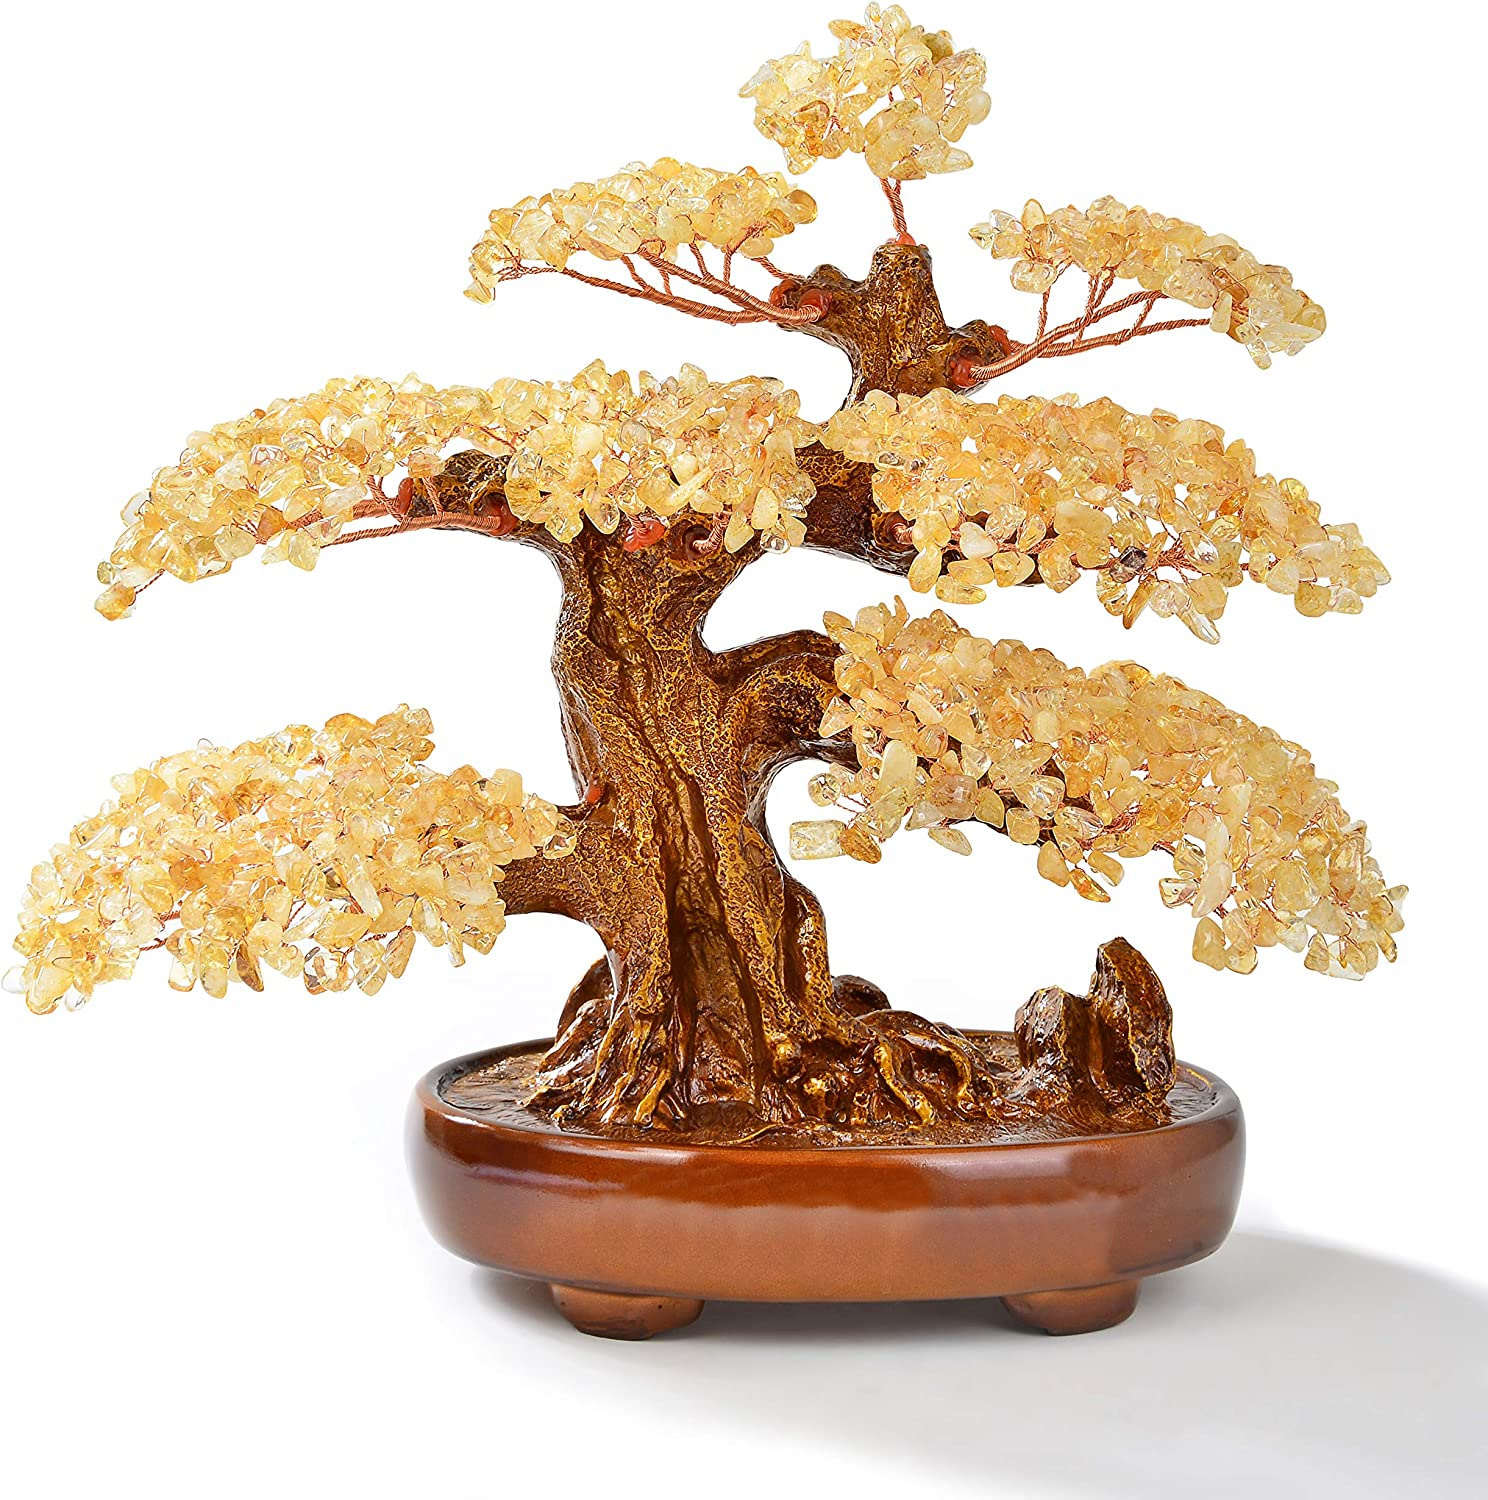 """KALIFANO Natural Citrine (1,251 Gemstone Count) Chakra Crystal Tree with Healing Properties - Bonsai Feng Shui Money Tree for Wealth and Prosperity - 14"""""""